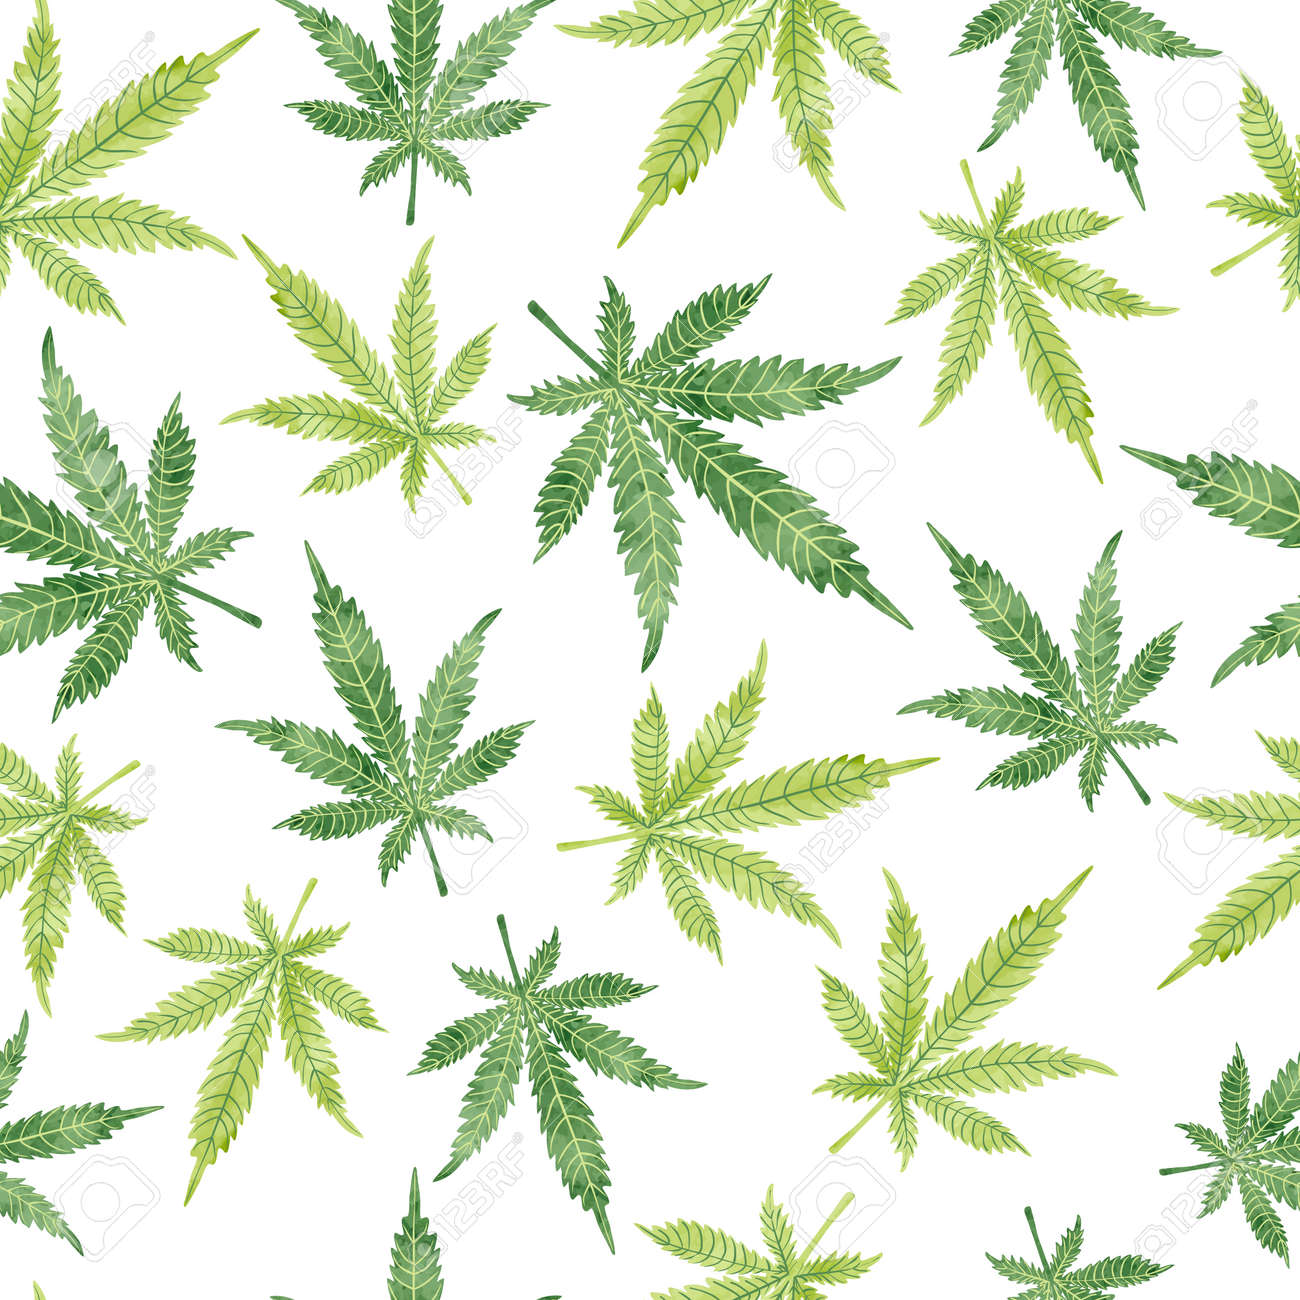 Watercolor Marijuana Leaves Seamless Pattern Vector Cannabis Royalty Free Cliparts Vectors And Stock Illustration Image 64189806